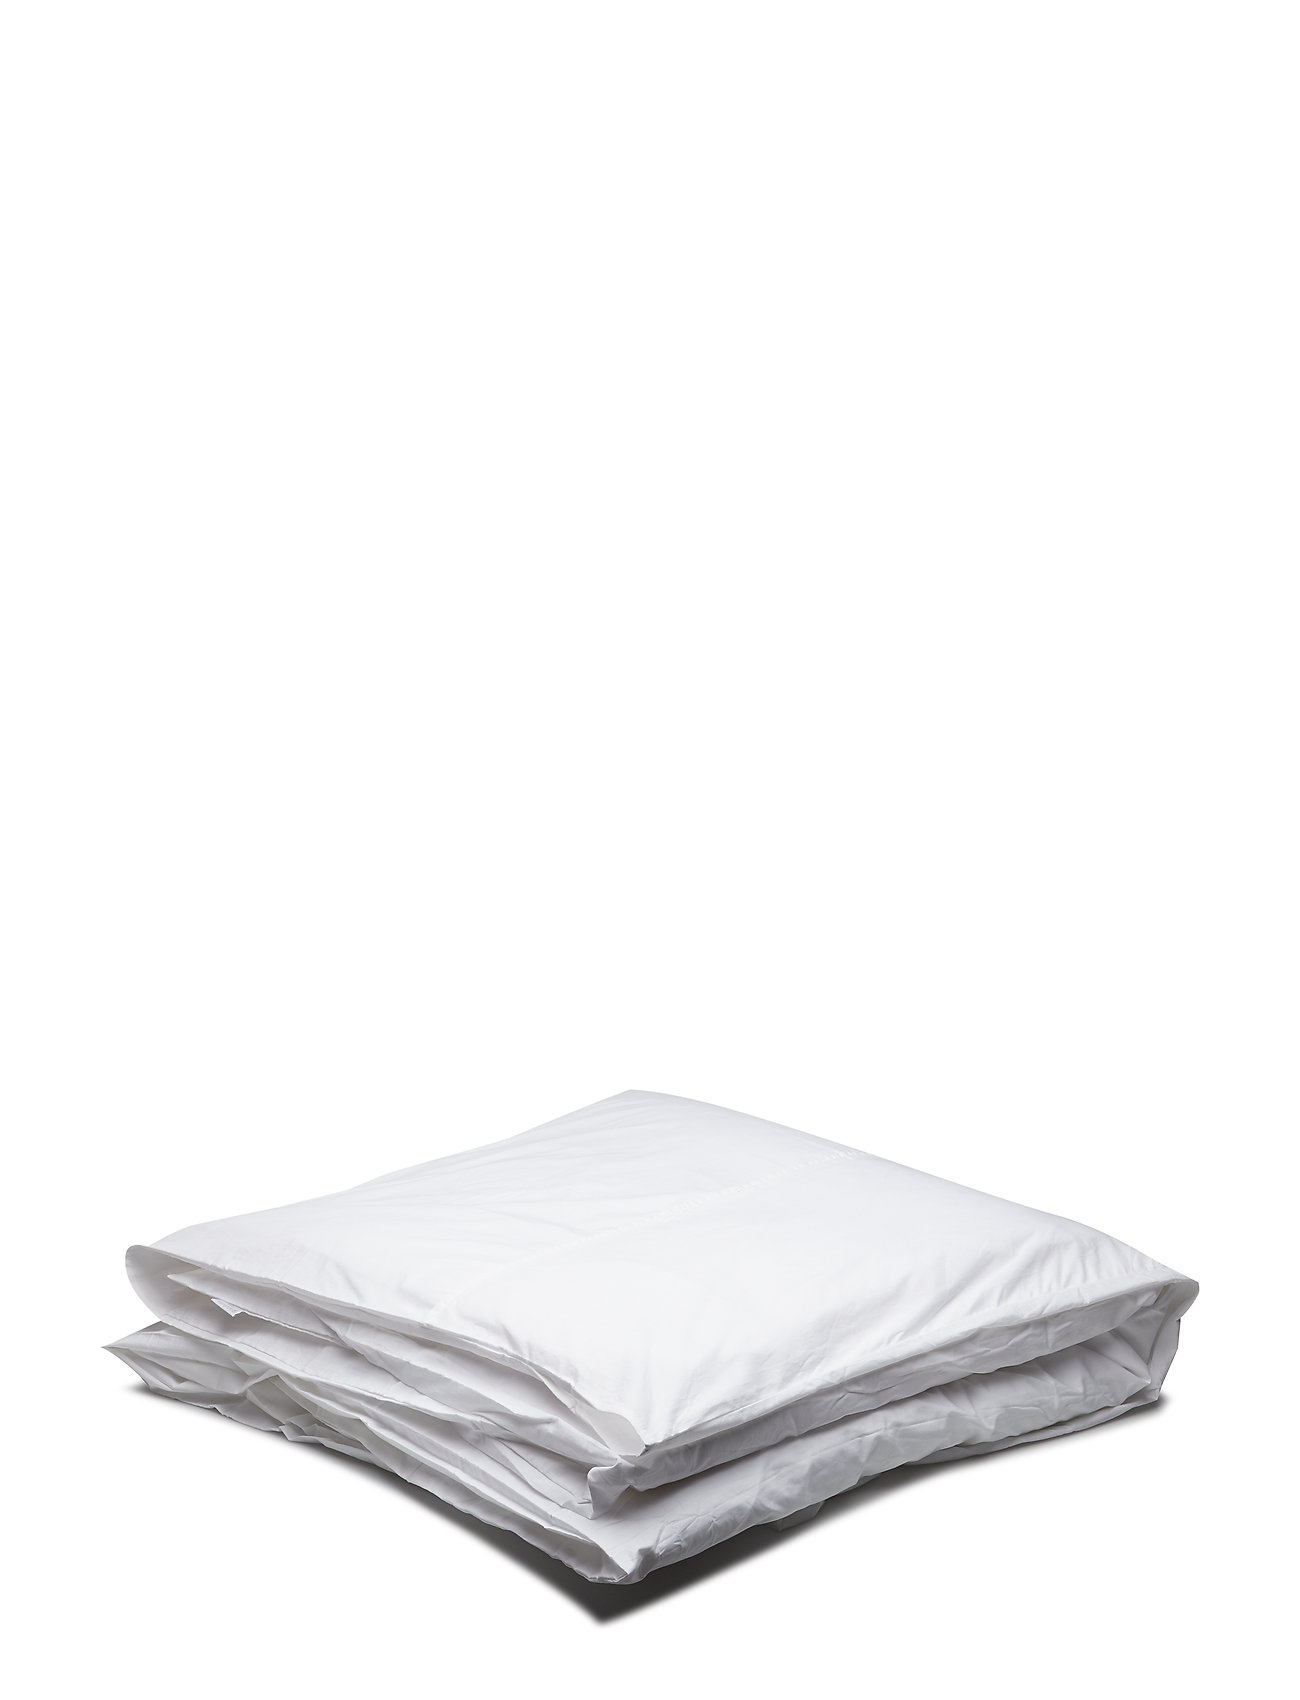 Gripsholm QUILT COVER ECO PERCALE KING SIZE SELMA - WHITE